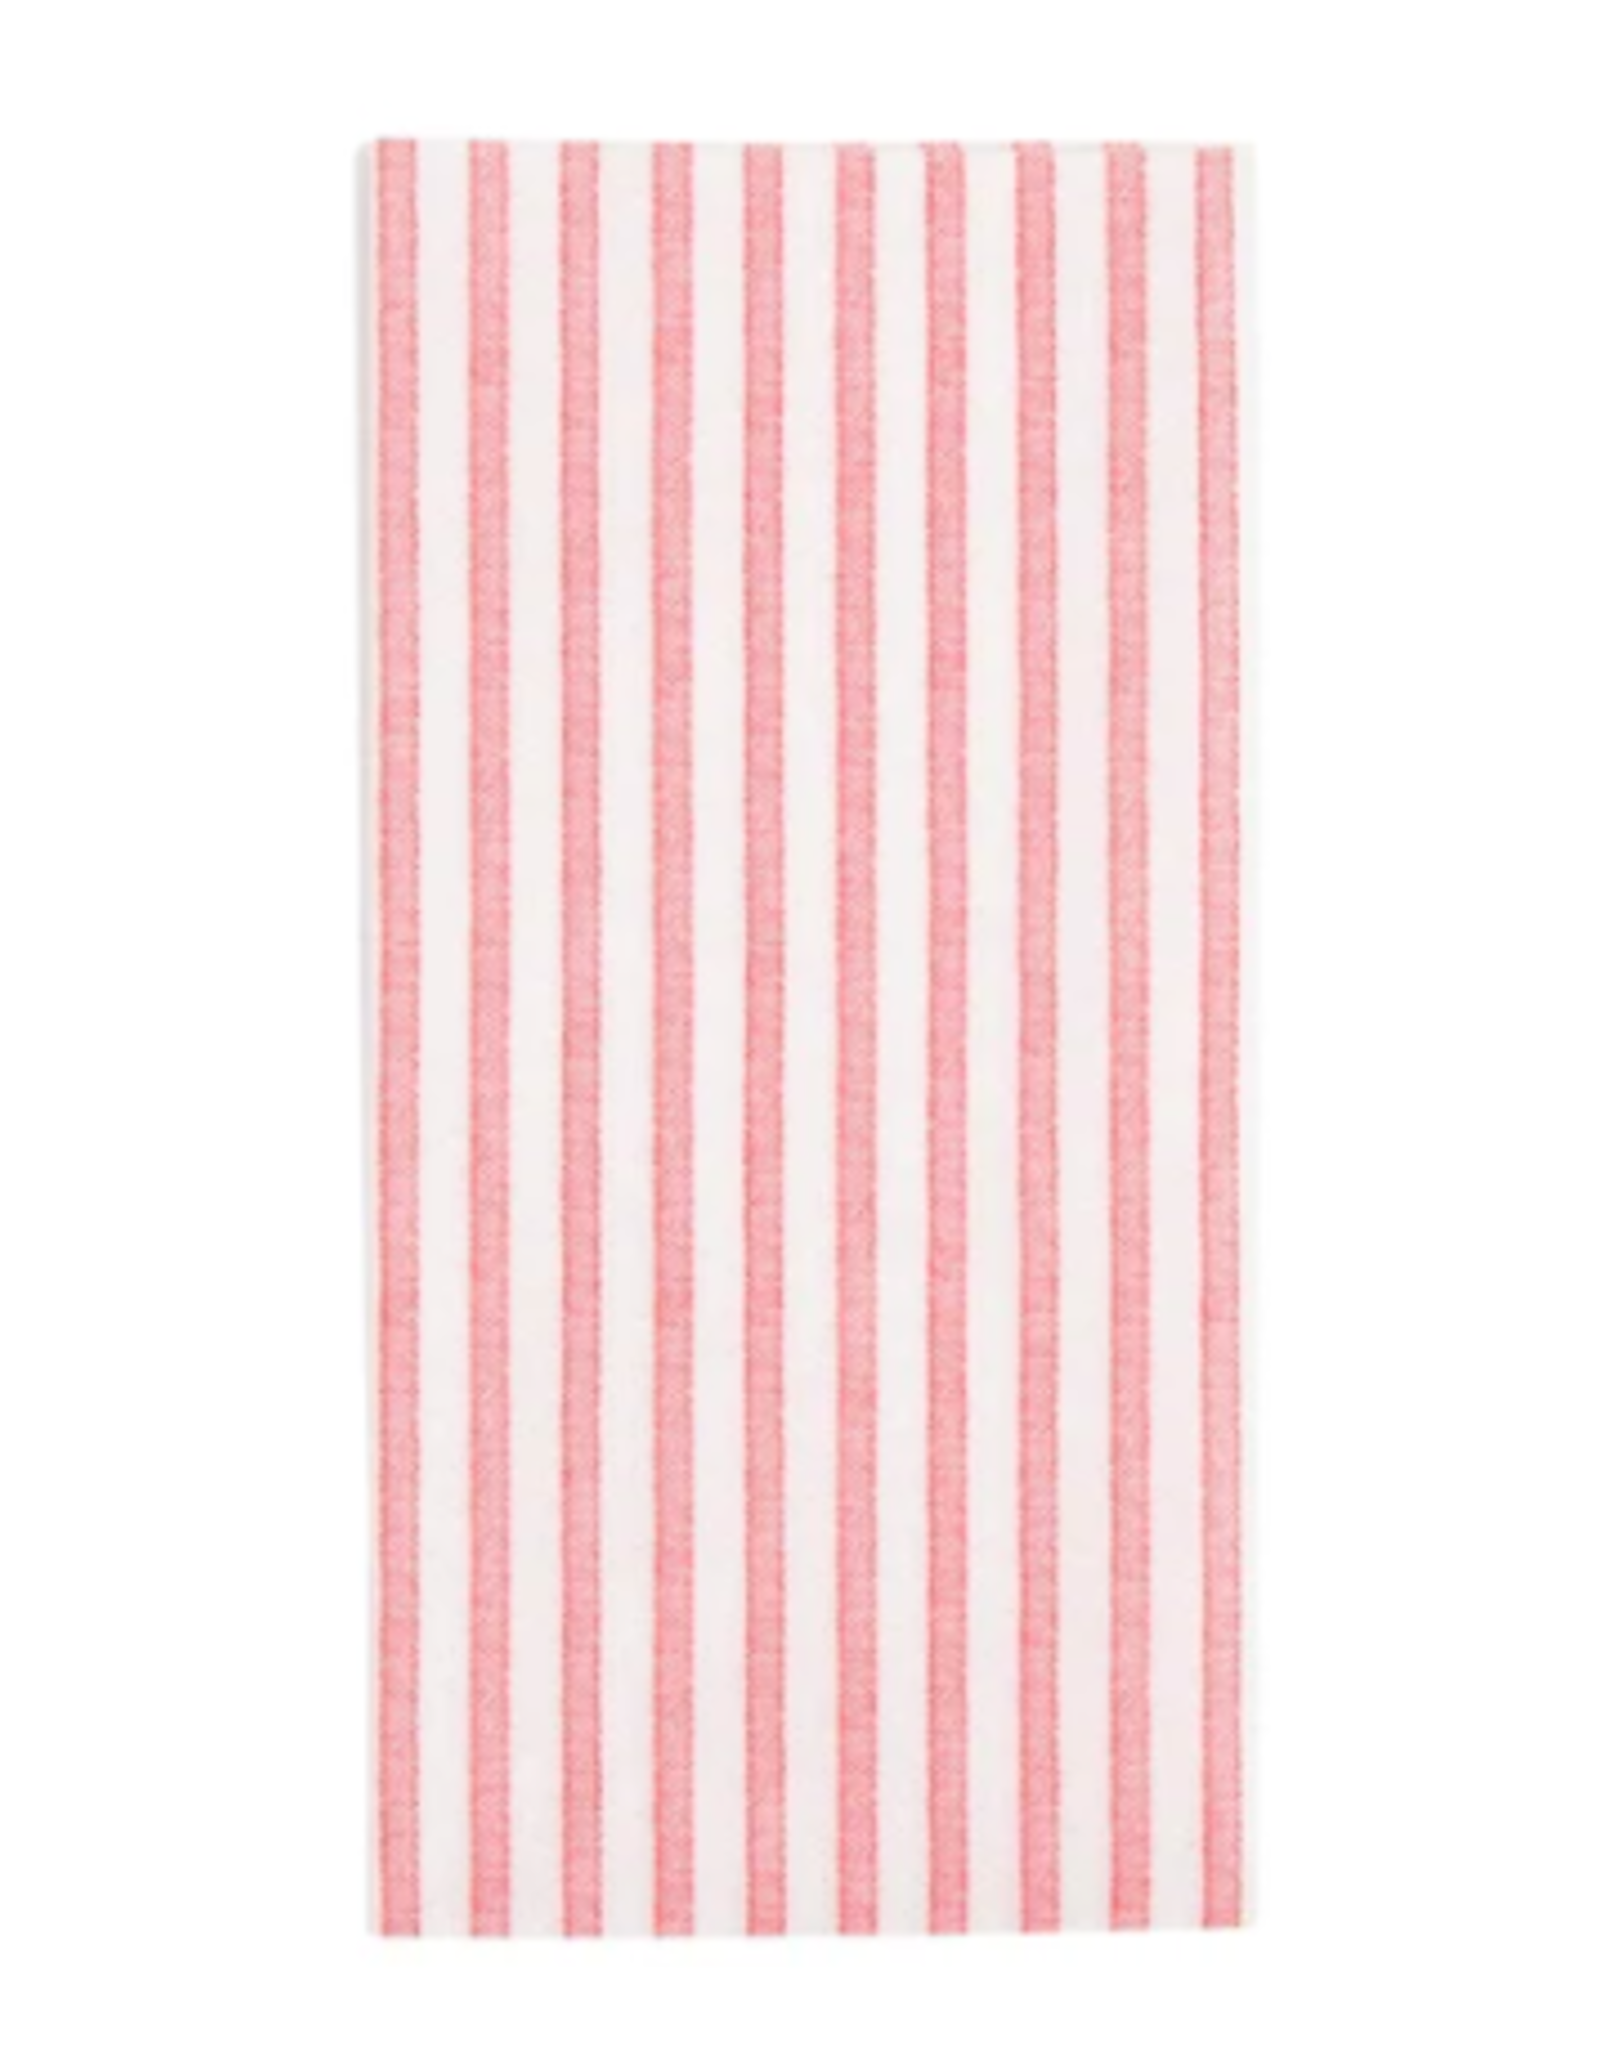 Vietri Red and White Striped Guest Towels